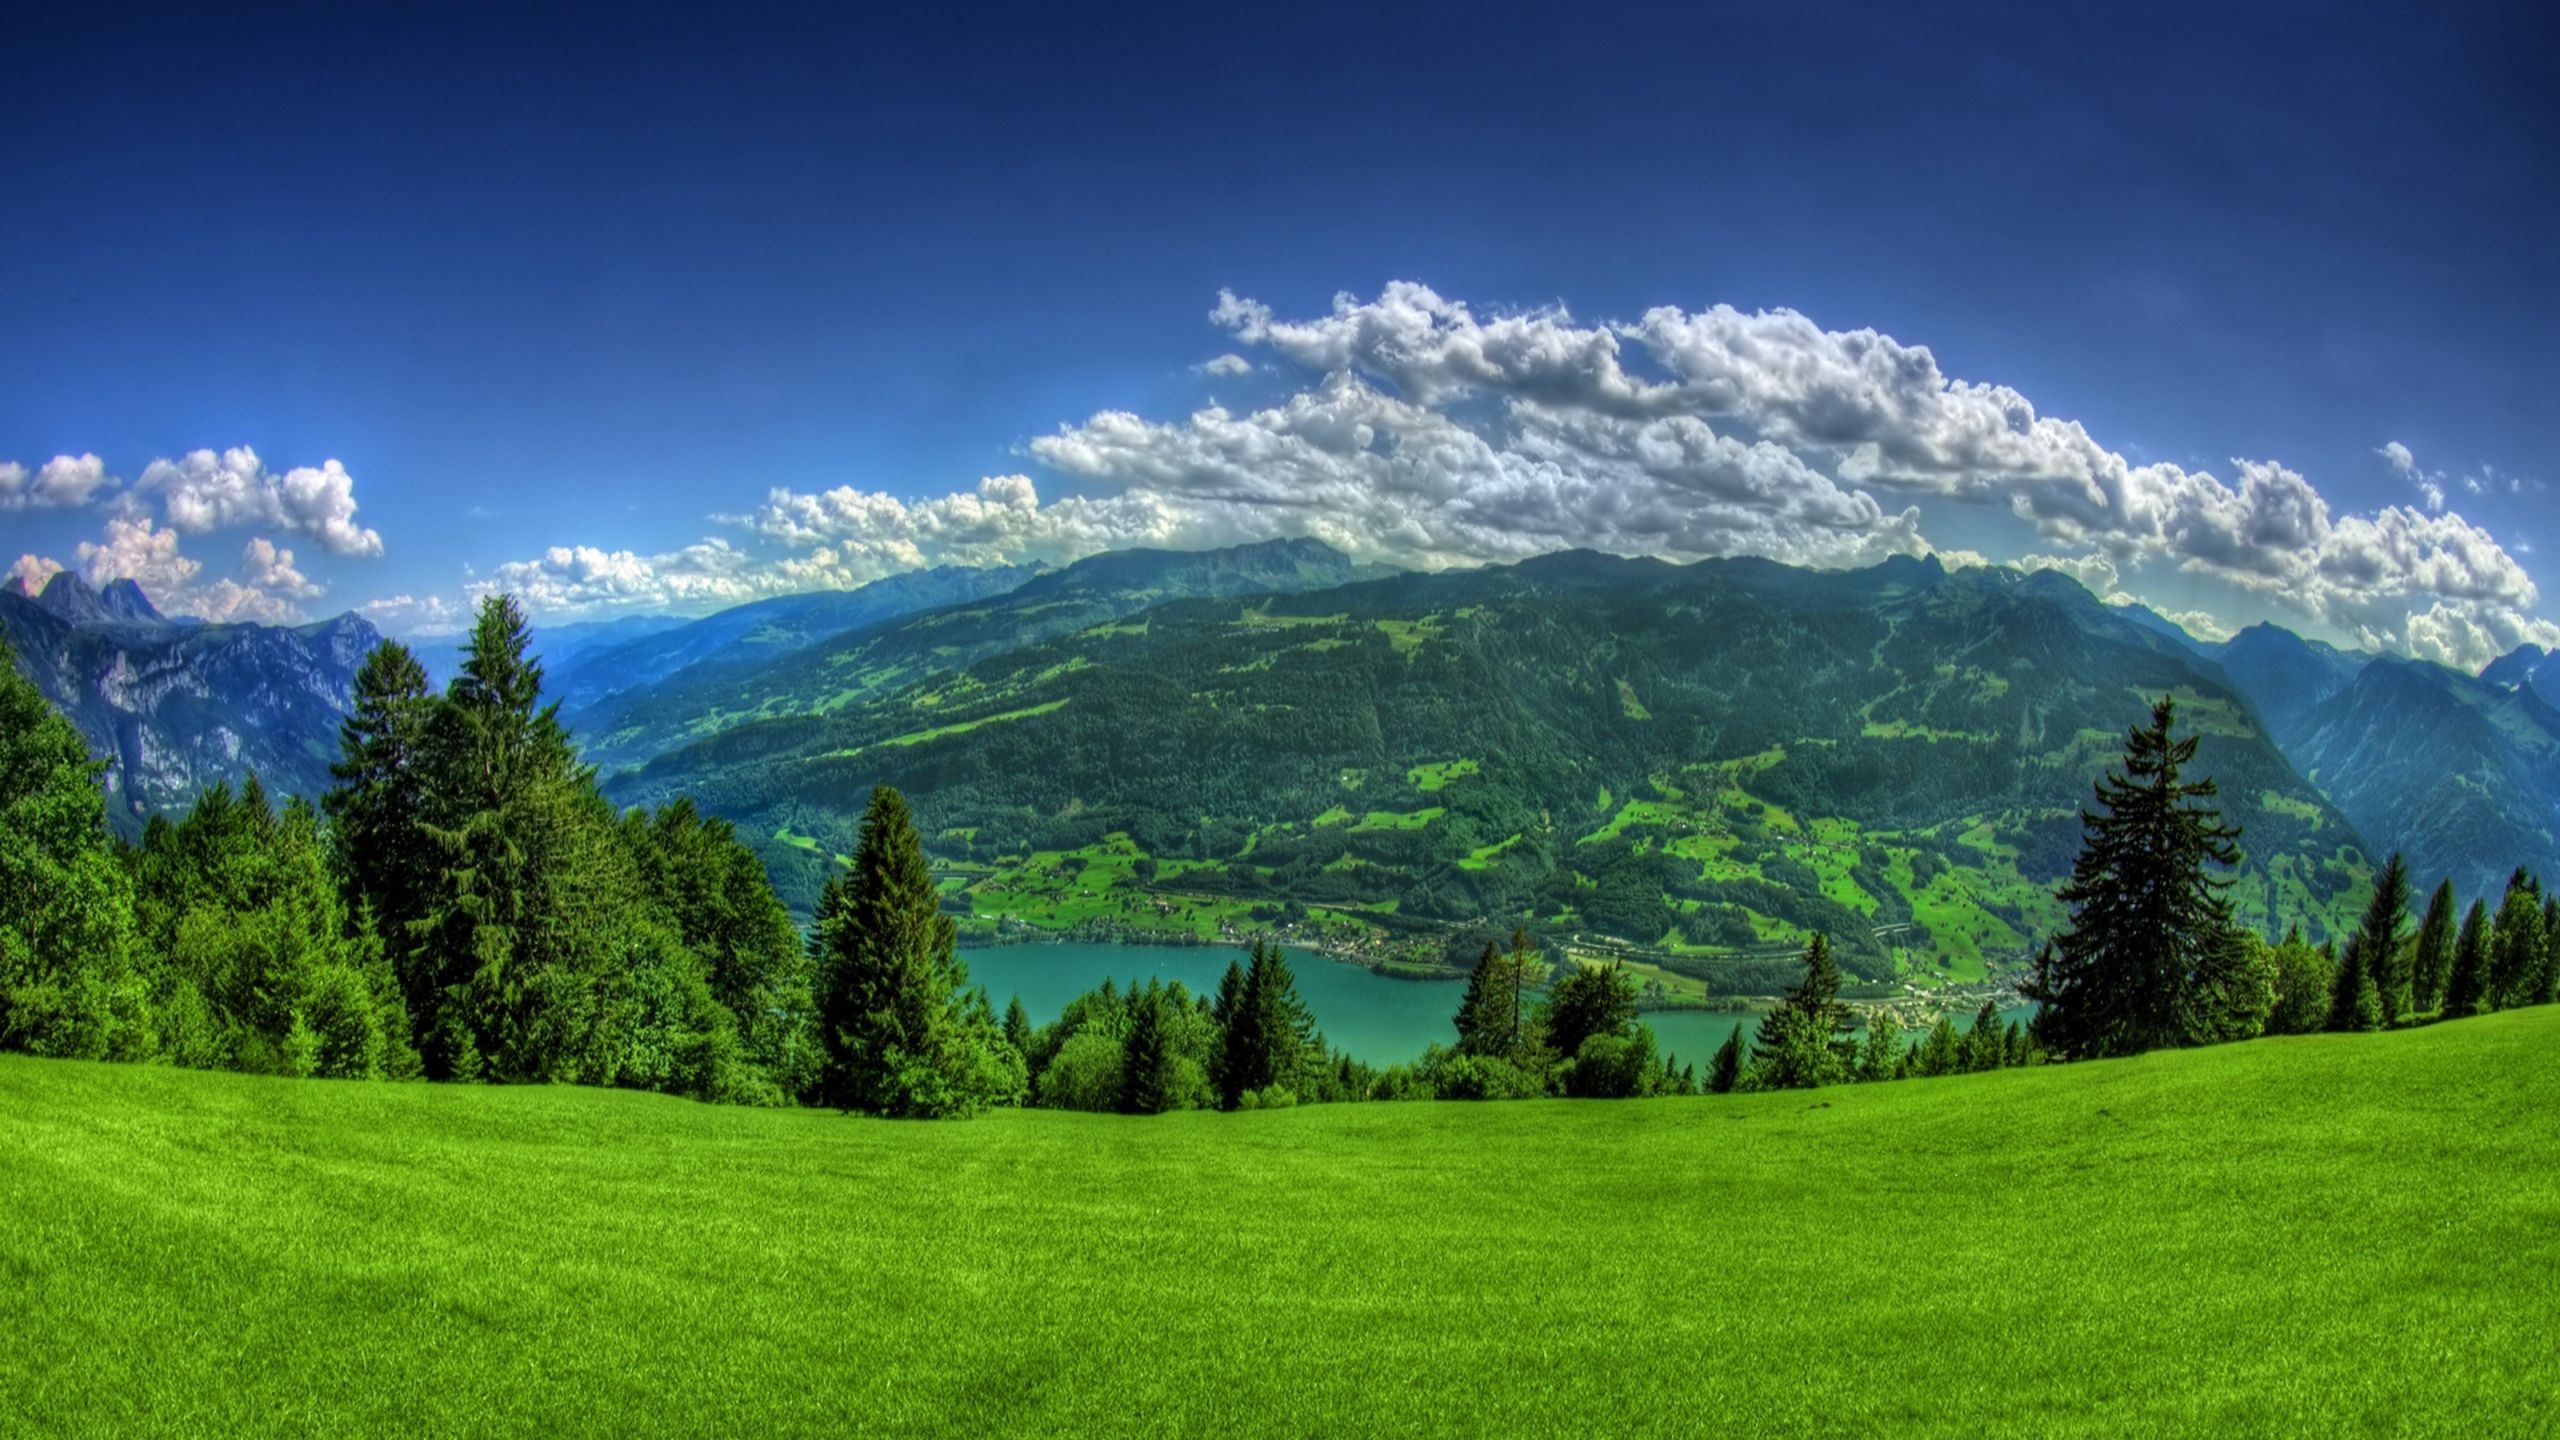 Download Best In nature, 2560x1440 HD Wallpaper and FREE Stock Photo | FABULOUS BACKGROUNDS FOR ...